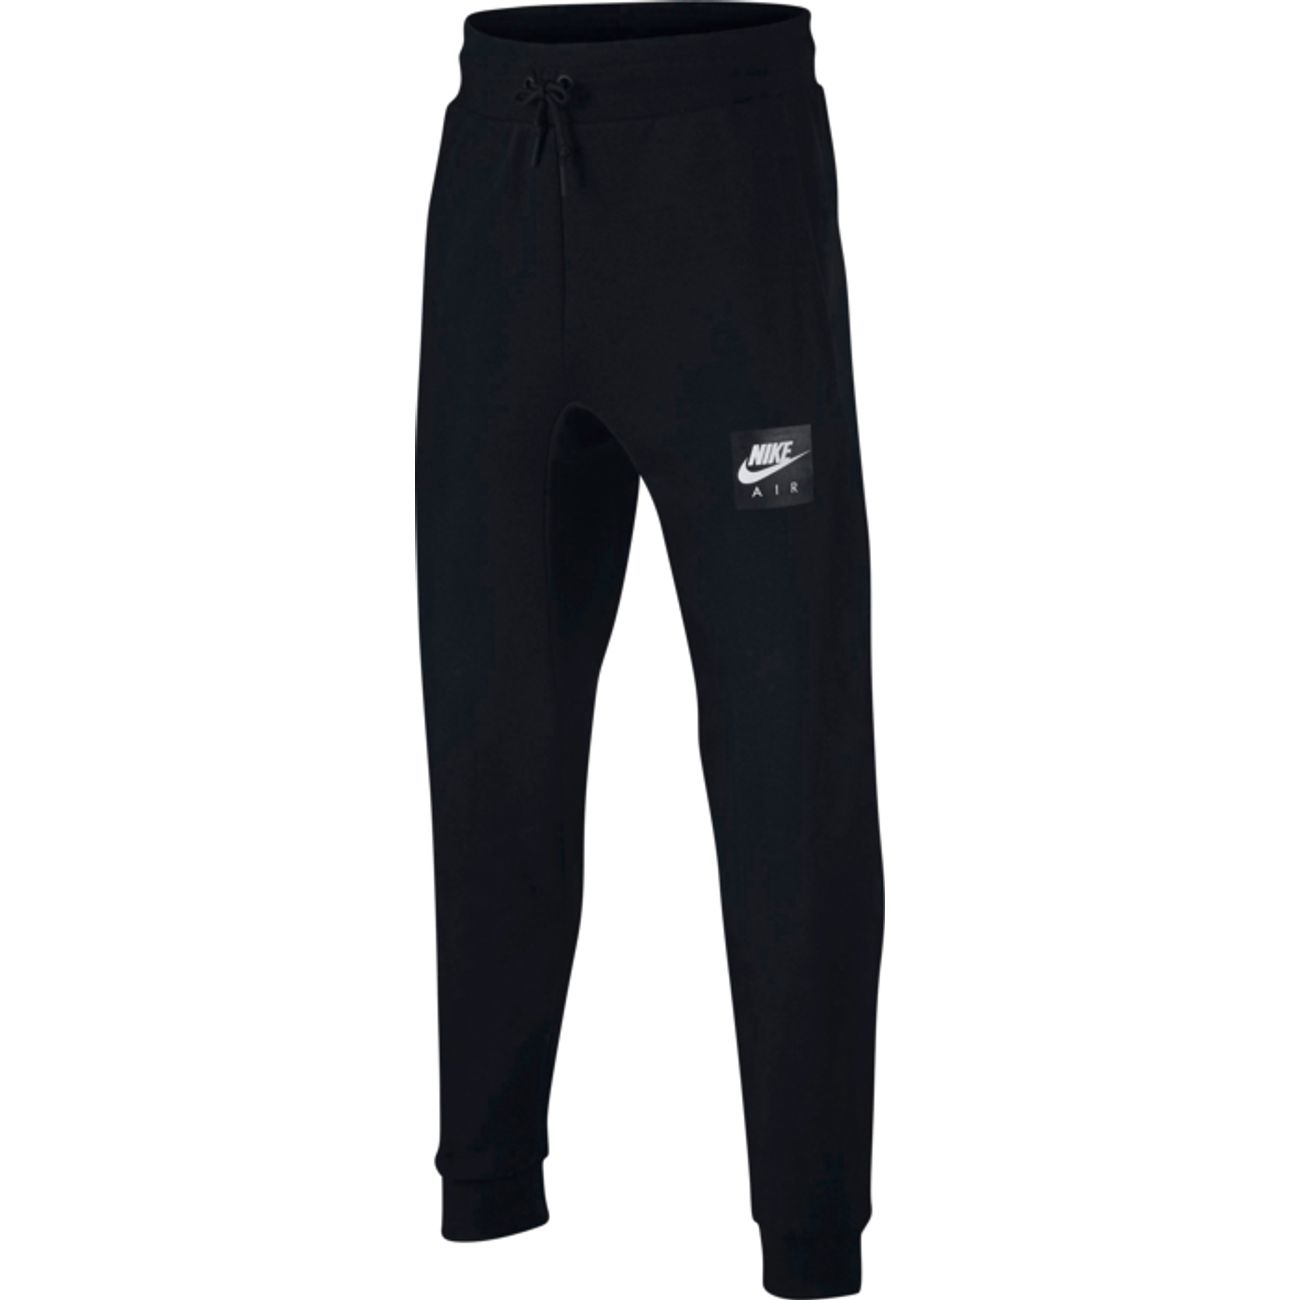 PANTALON Multisport garçon NIKE AIR